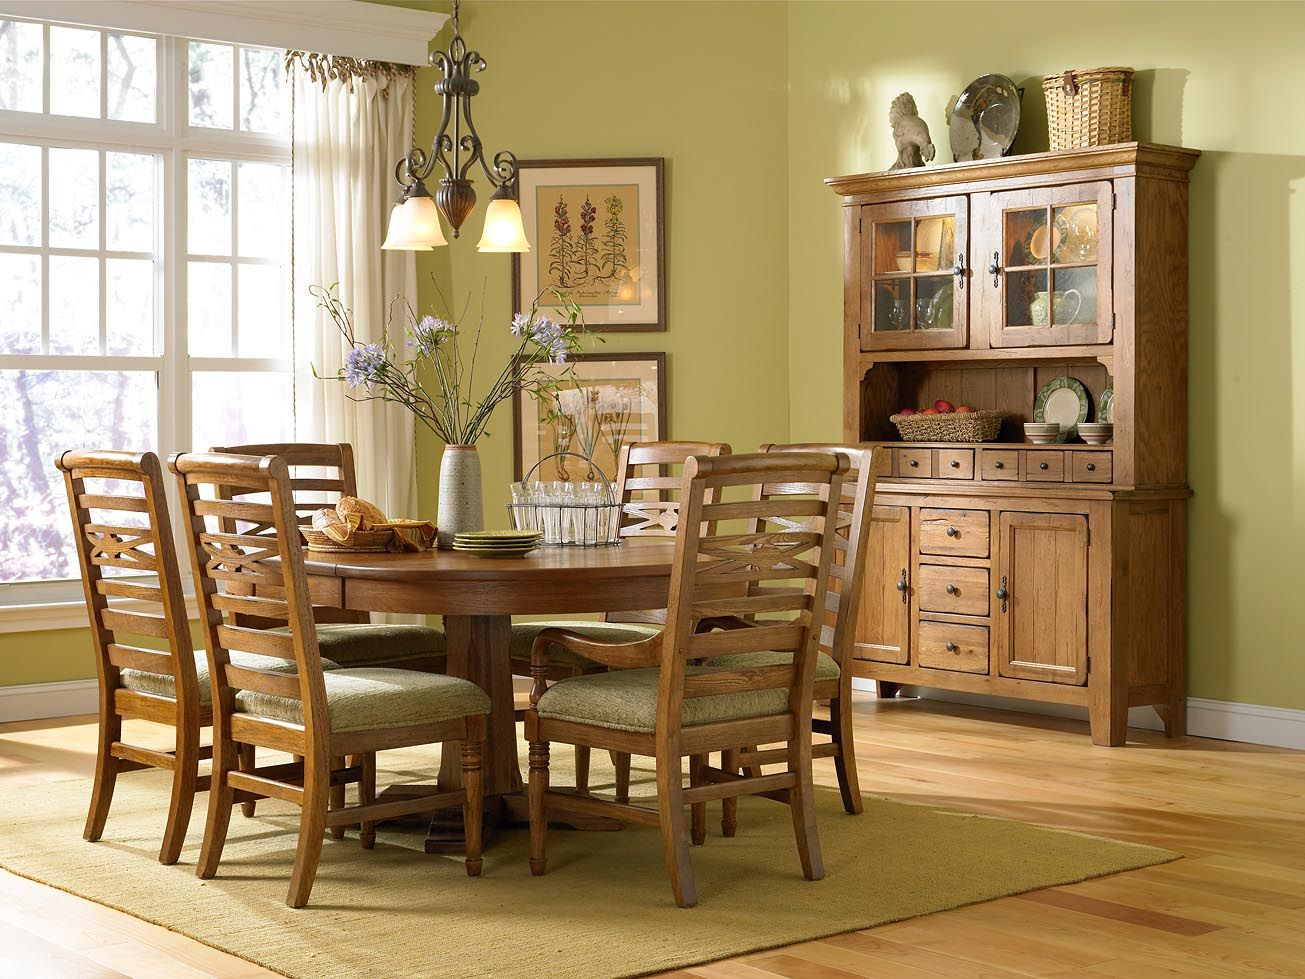 My Broyhill Attic Heirloom Dining Set Pedestool Table Furniture Ideas Home Round